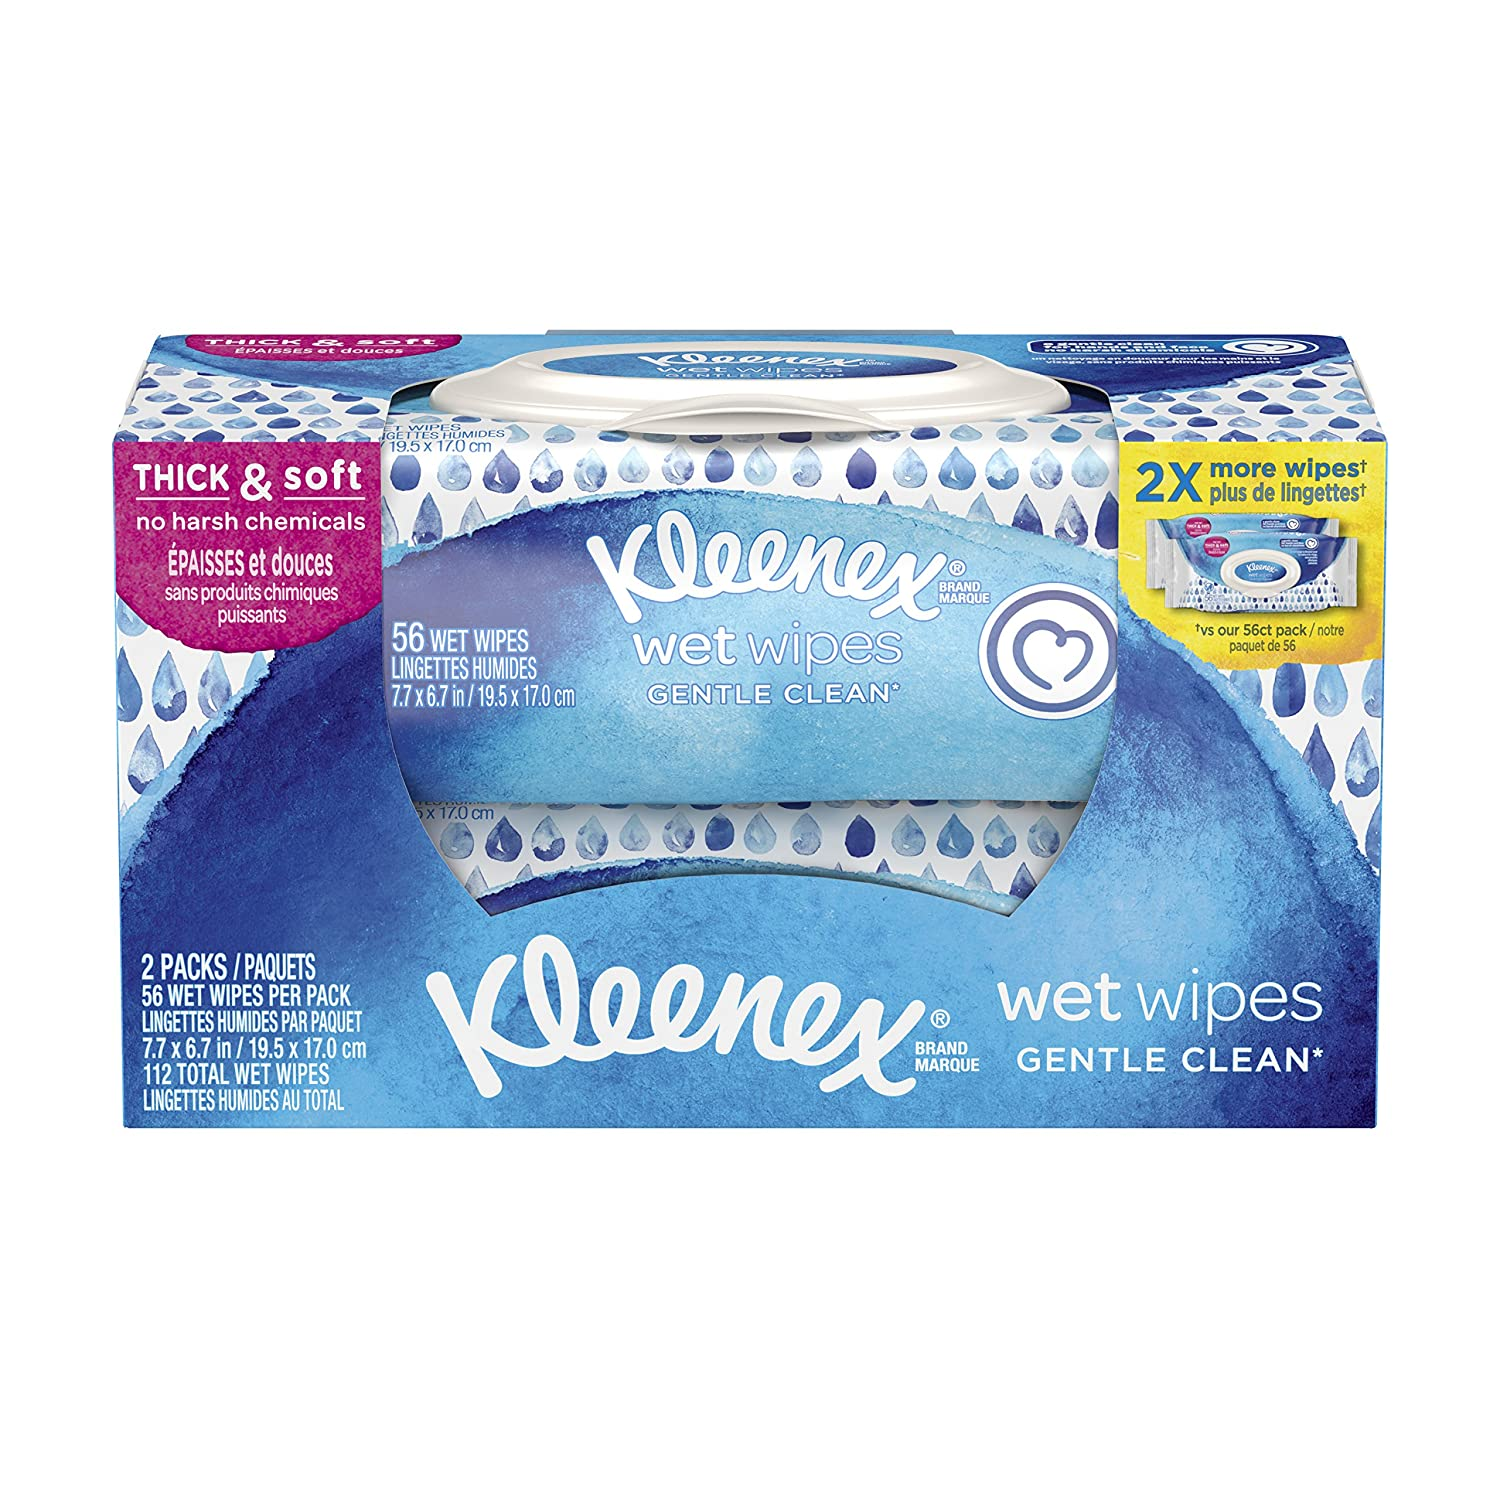 Kleenex Wet Wipes Gentle Clean for Hands and Face, Flip-top Pack, 56 Wipes  (2 Packs, 112 Total Wipes): Amazon.ca: Health & Personal Care